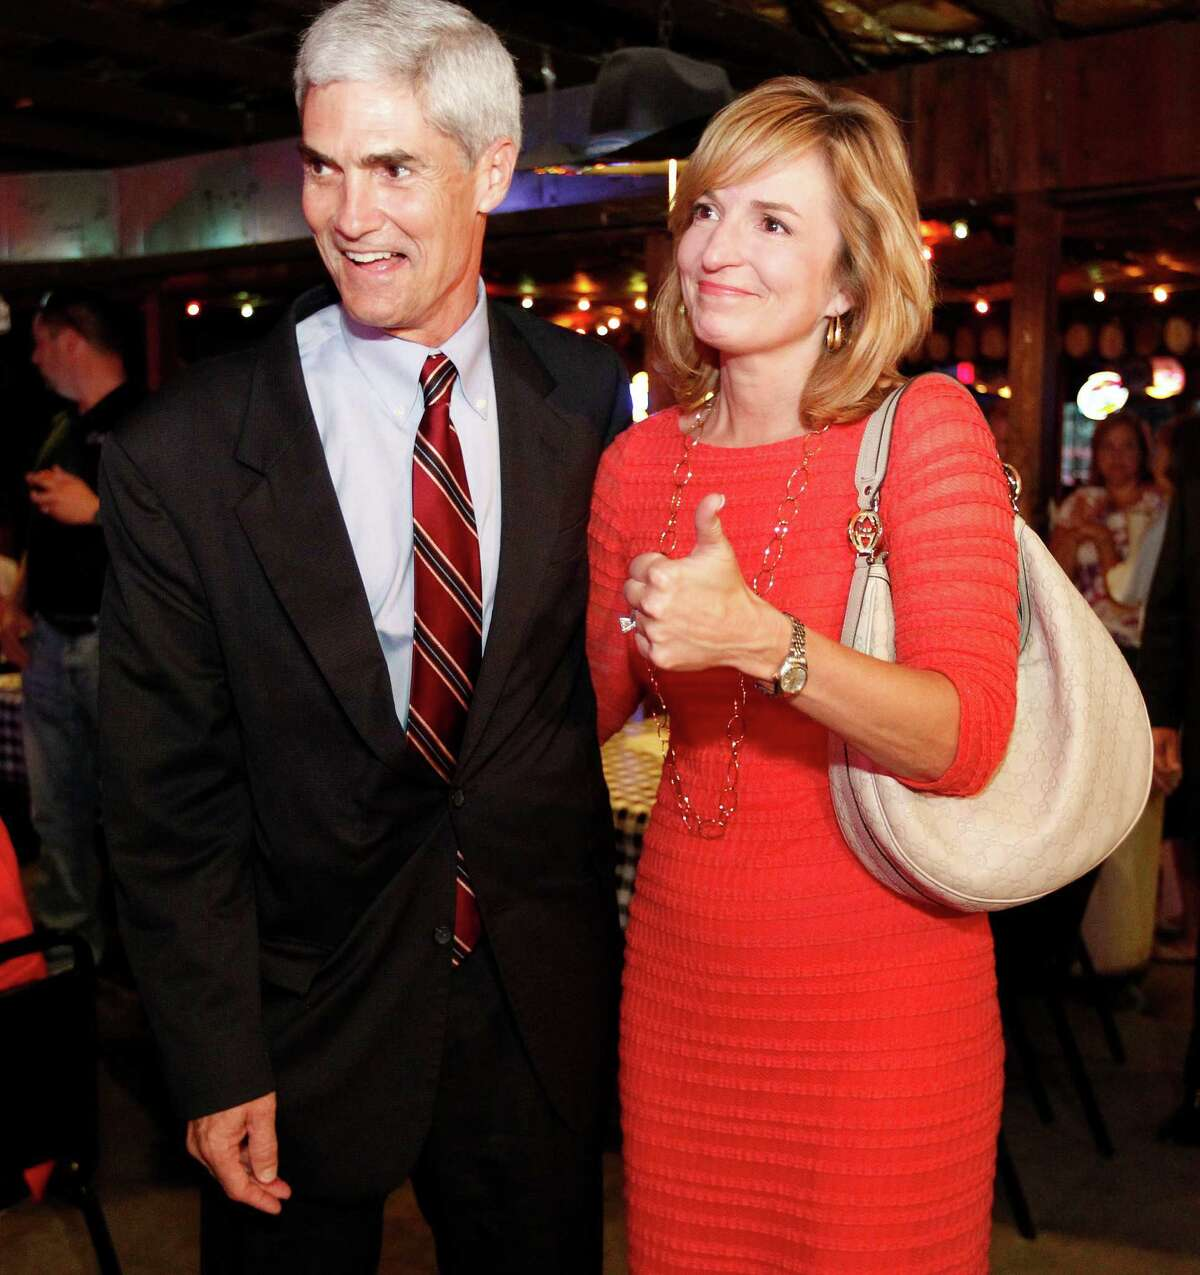 Republican candidate for Harris County District Attorney Mike Anderson and his wife Devon Anderson during Anderson's election watch party at Blanco's Bar & Grill Tuesday, May 29, 2012, in Houston. ( James Nielsen / Chronicle )